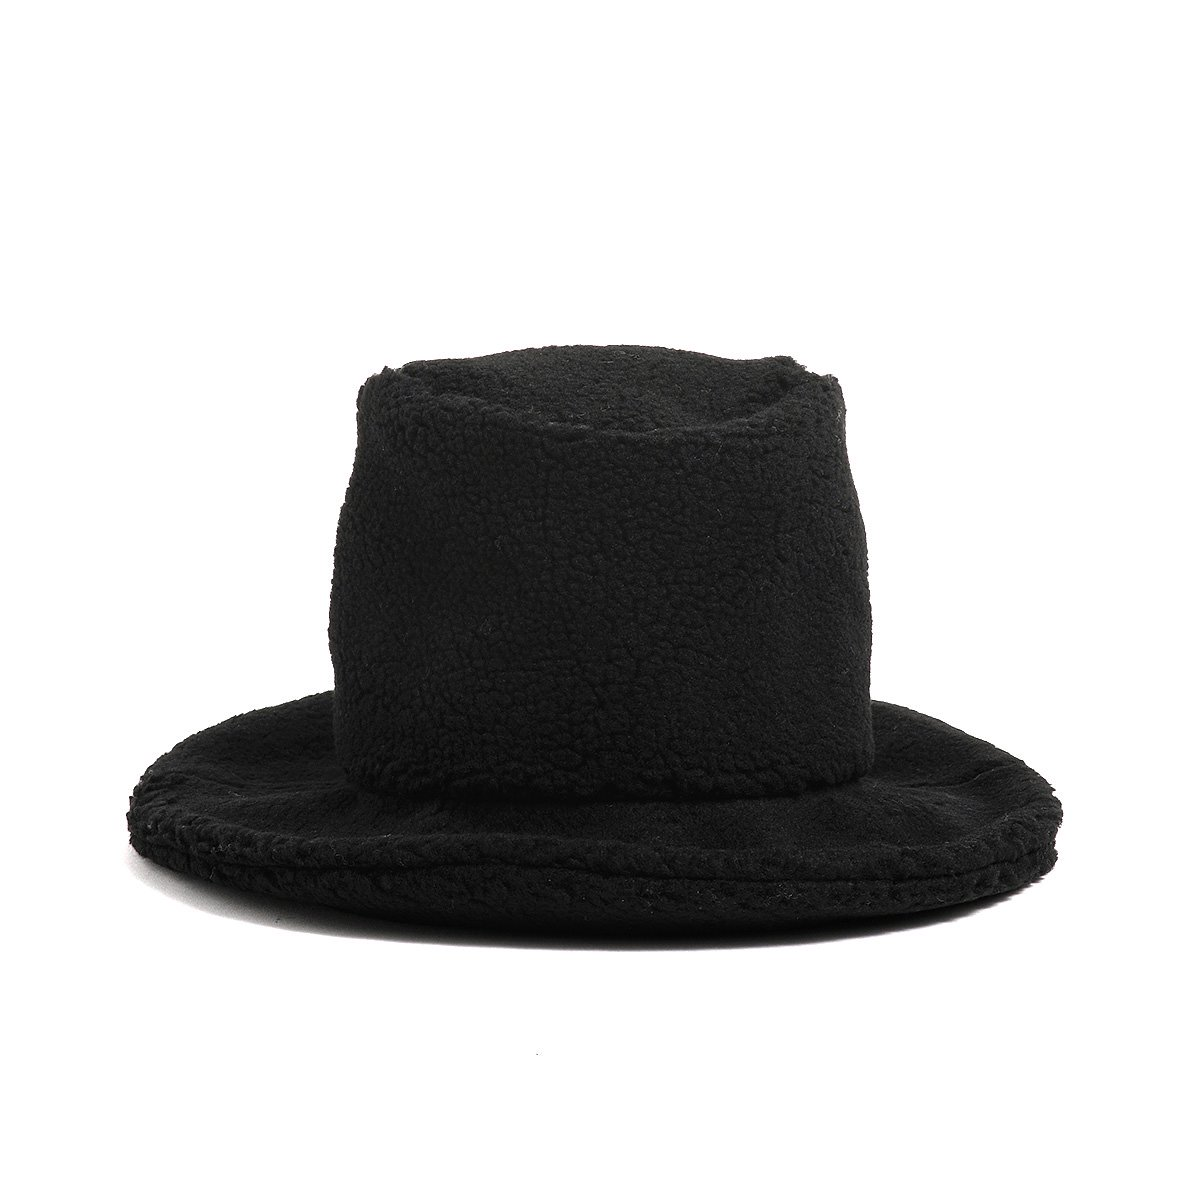 BOA HAT<img class='new_mark_img2' src='https://img.shop-pro.jp/img/new/icons38.gif' style='border:none;display:inline;margin:0px;padding:0px;width:auto;' />